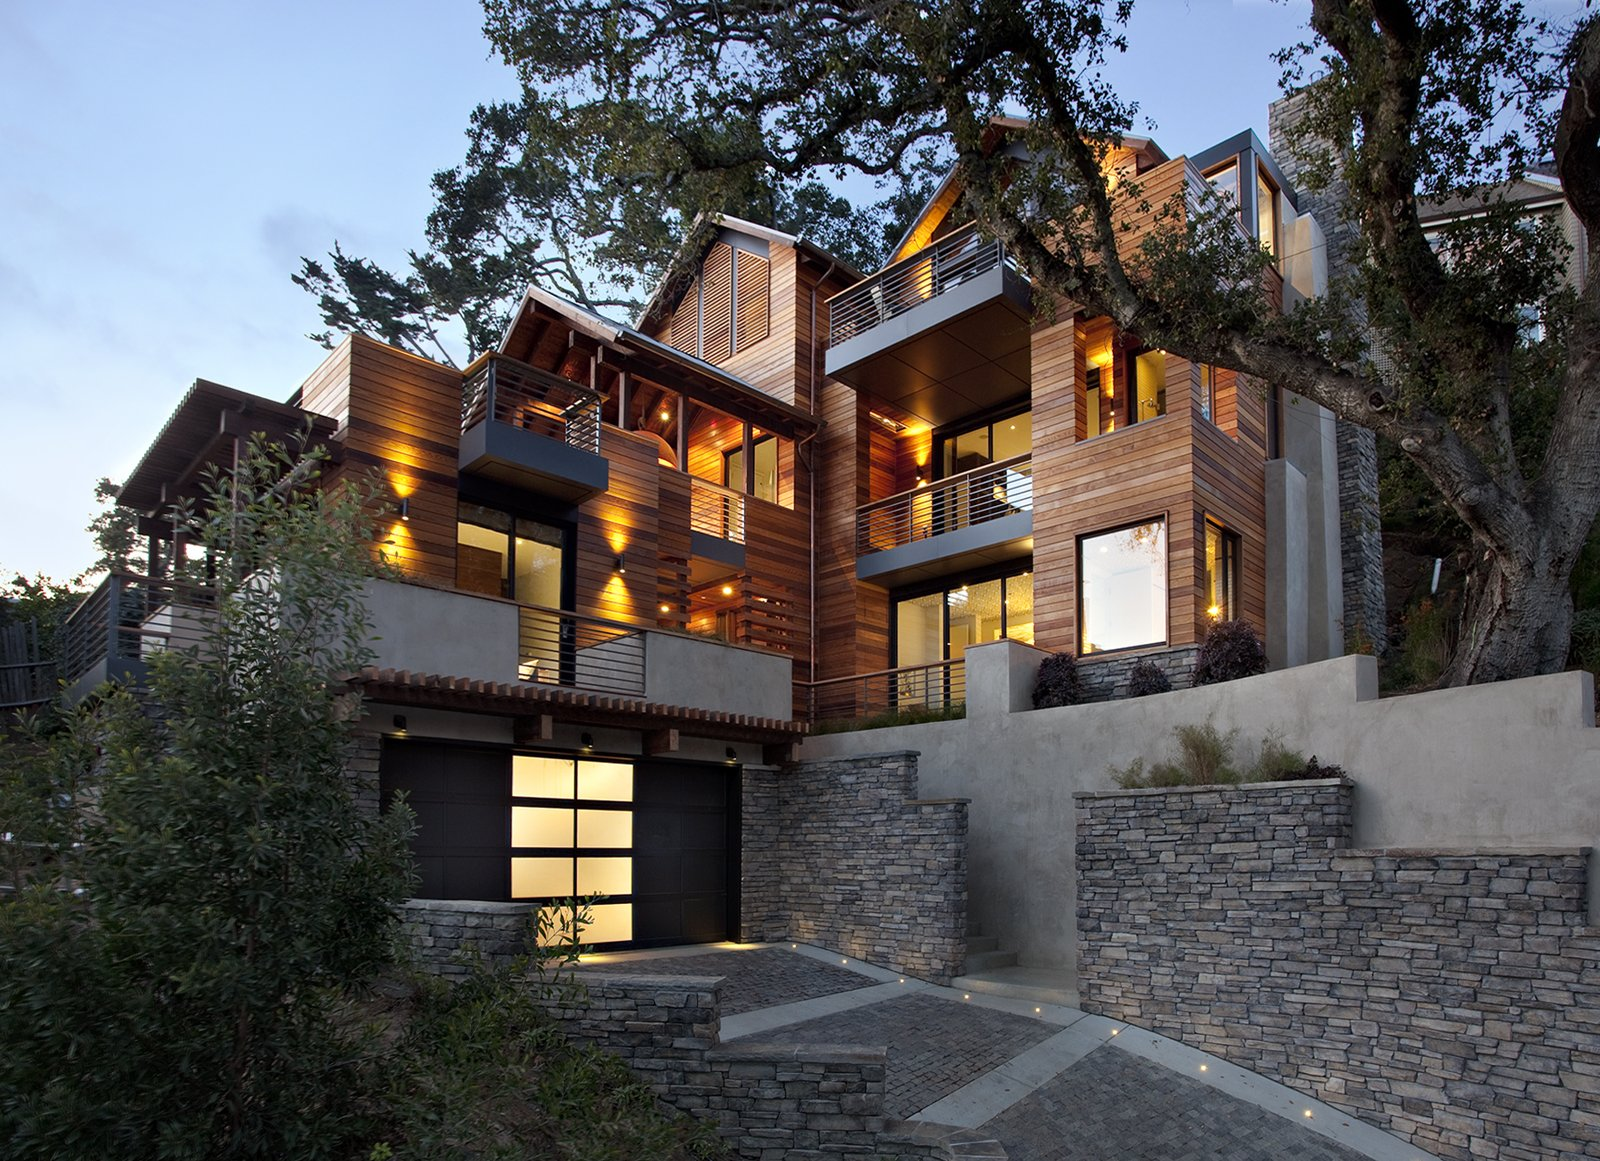 The Hillside Residence by Scott Lee of SB Architects in conjunction with Arcanum Architecture is in Mill Valley.